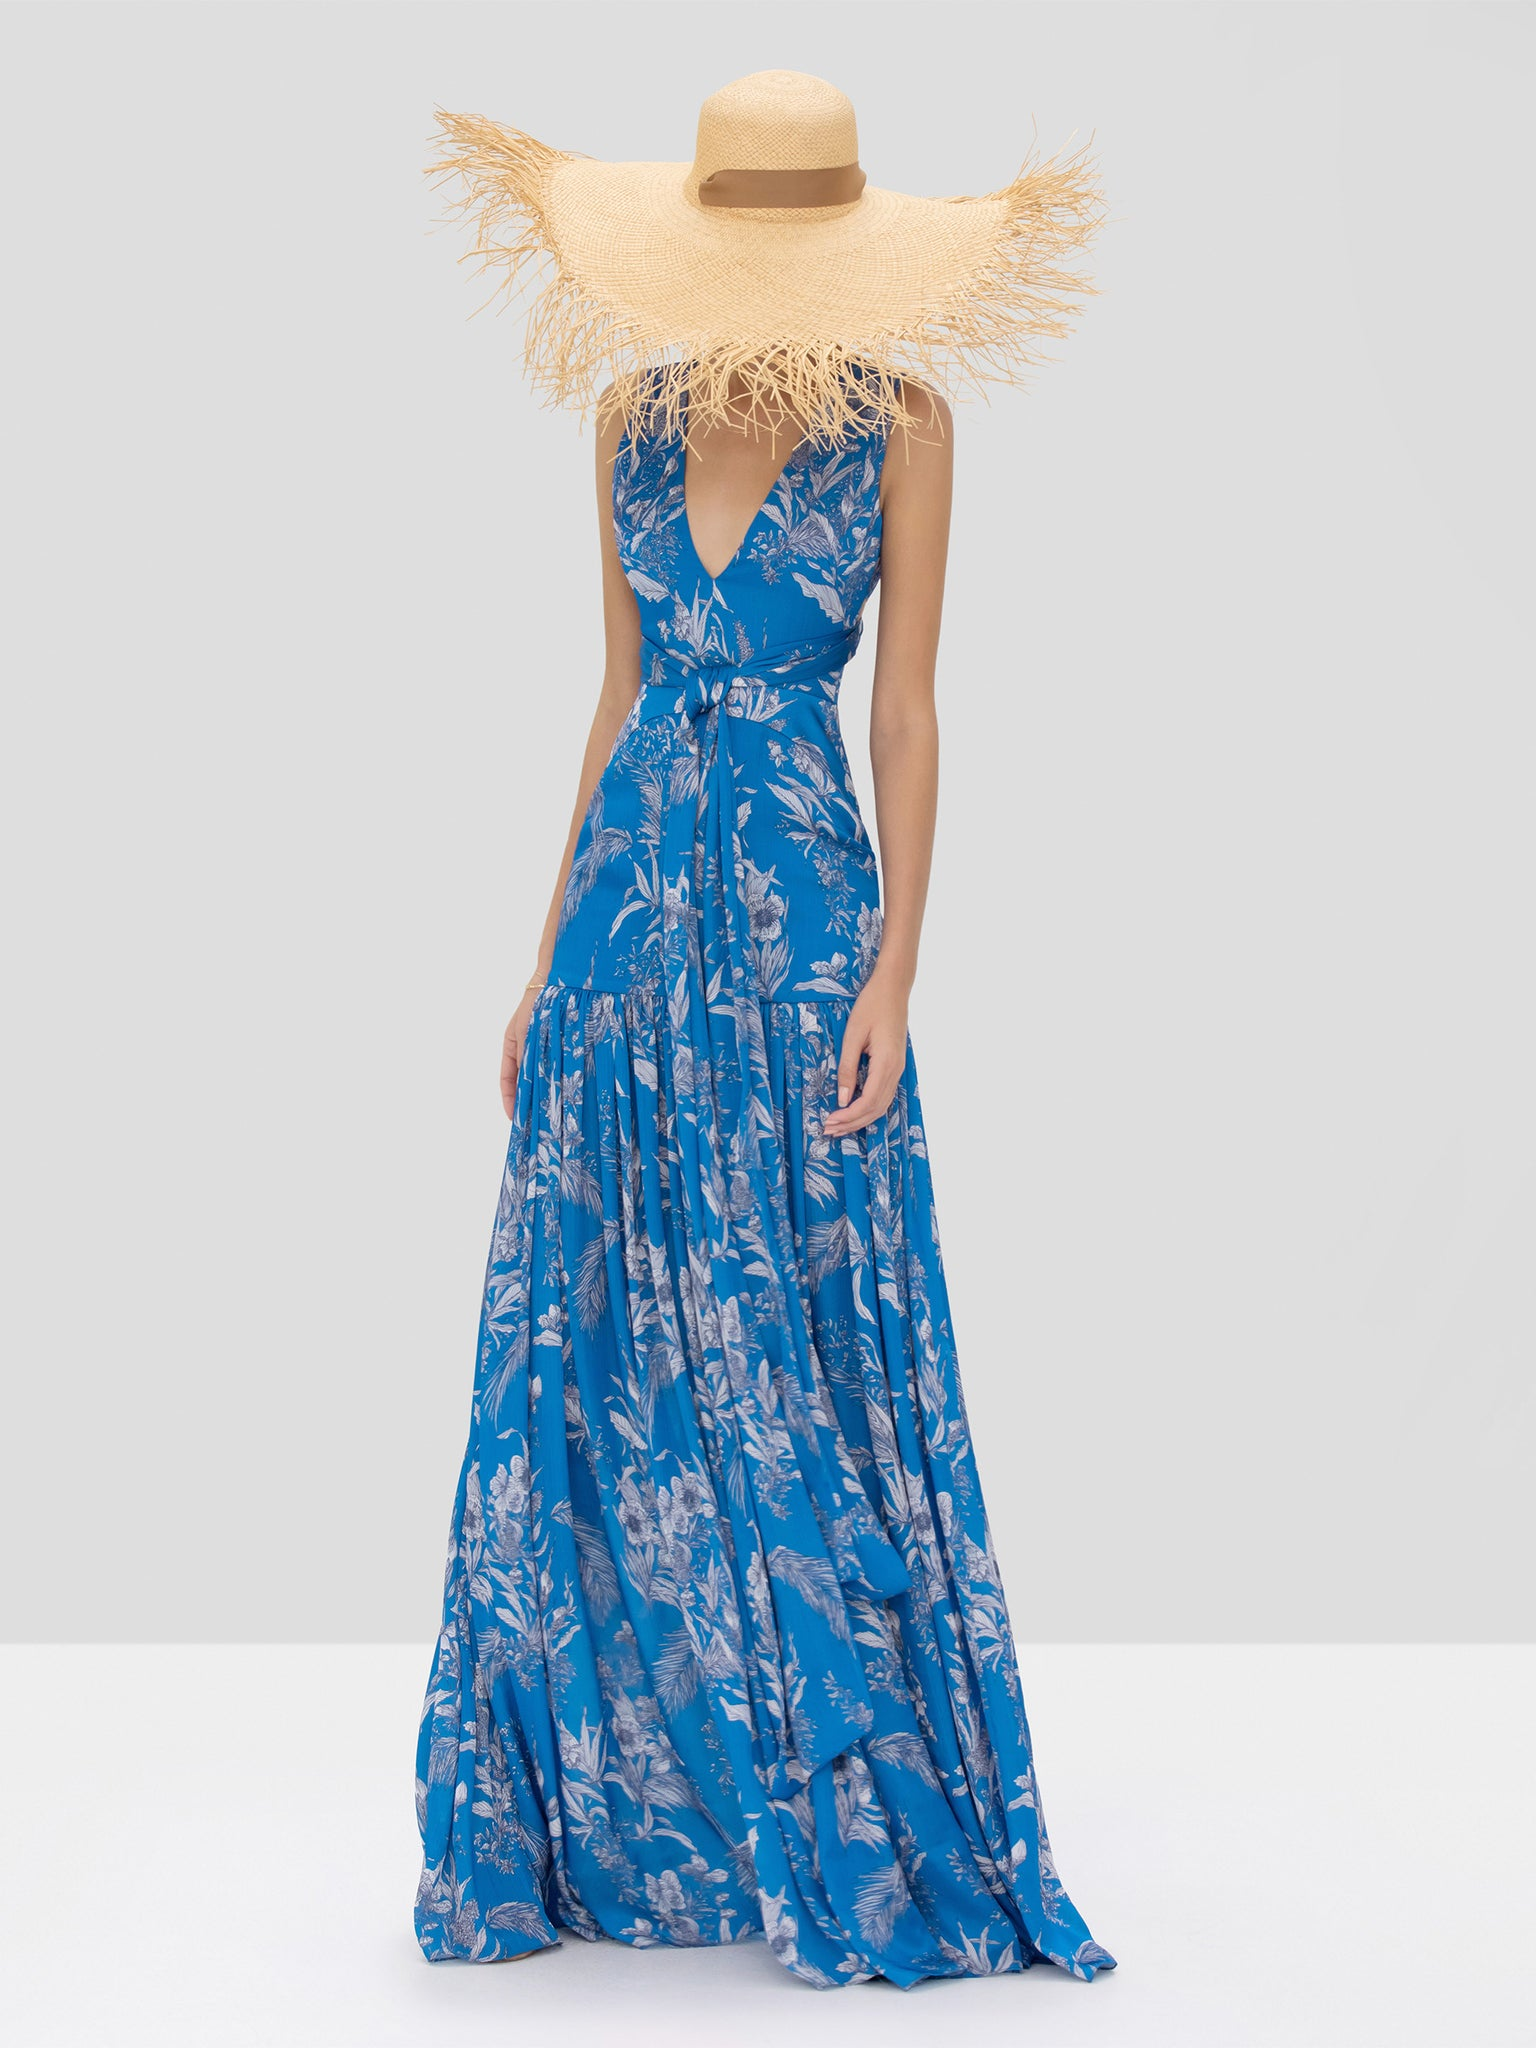 Alexis Belaya Dress in Blue Palm from Spring Summer 2020 Collection